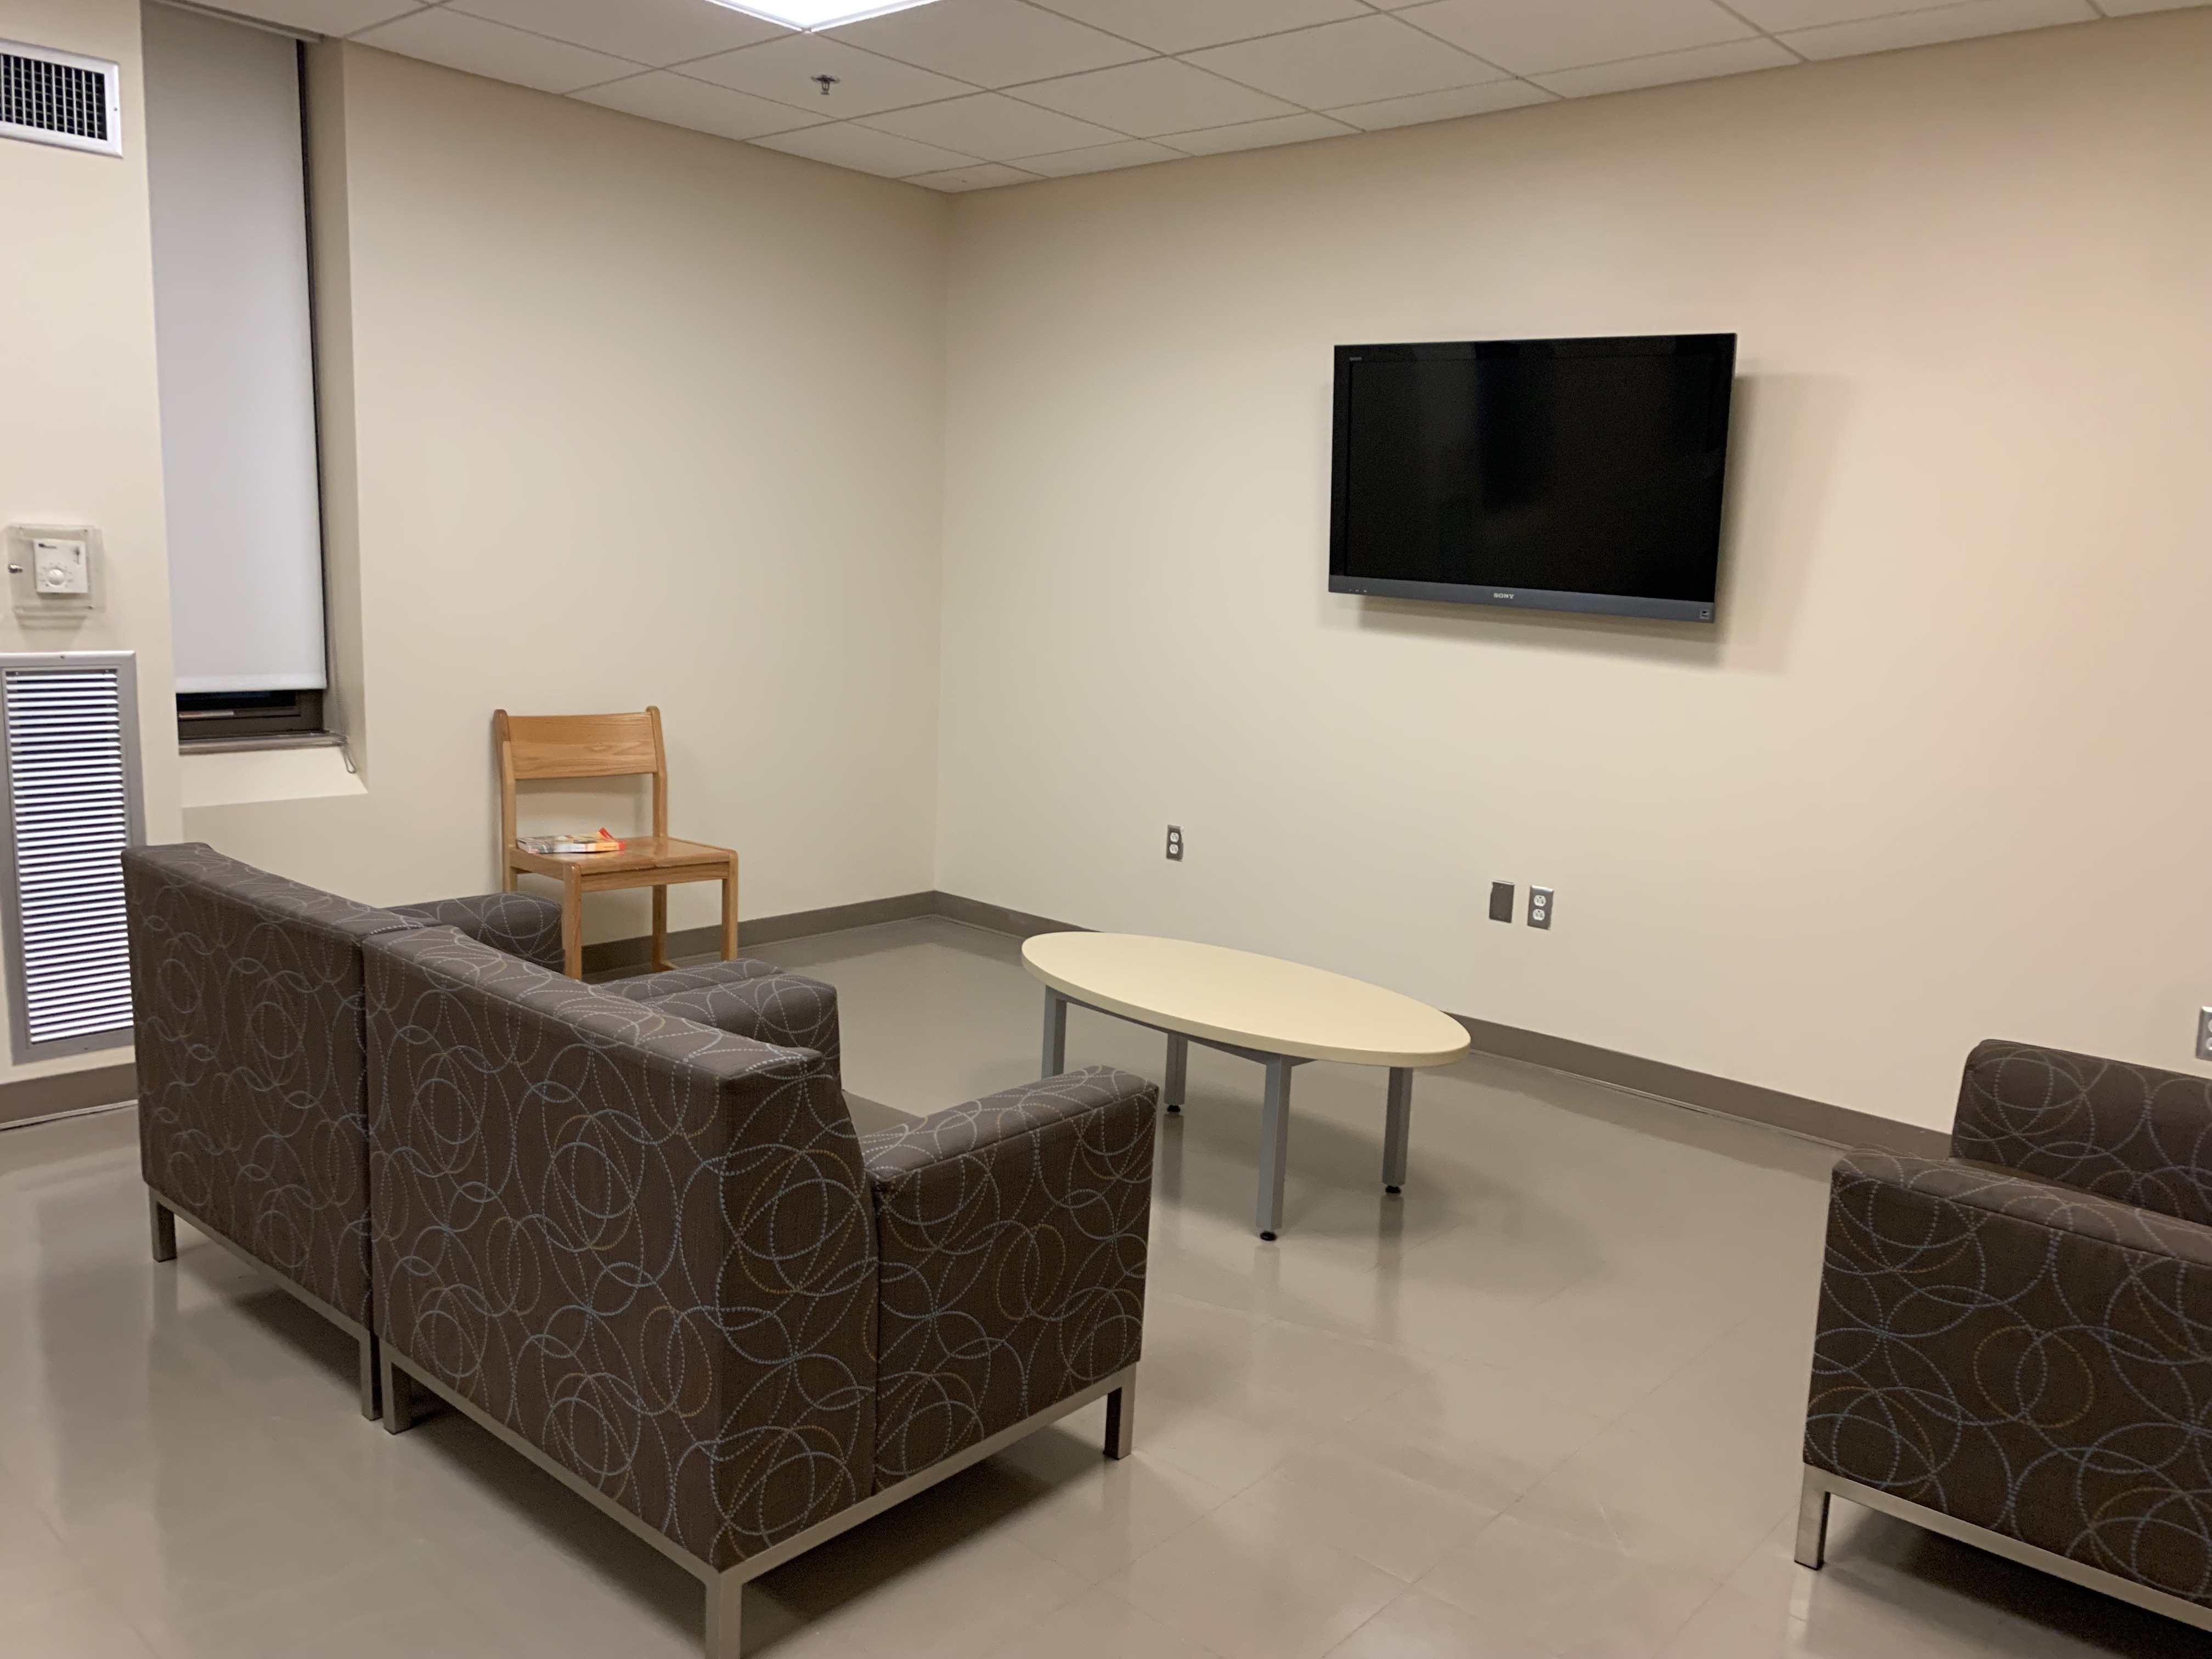 small lounge with couch, arm chair, table, and wall-mounted TV